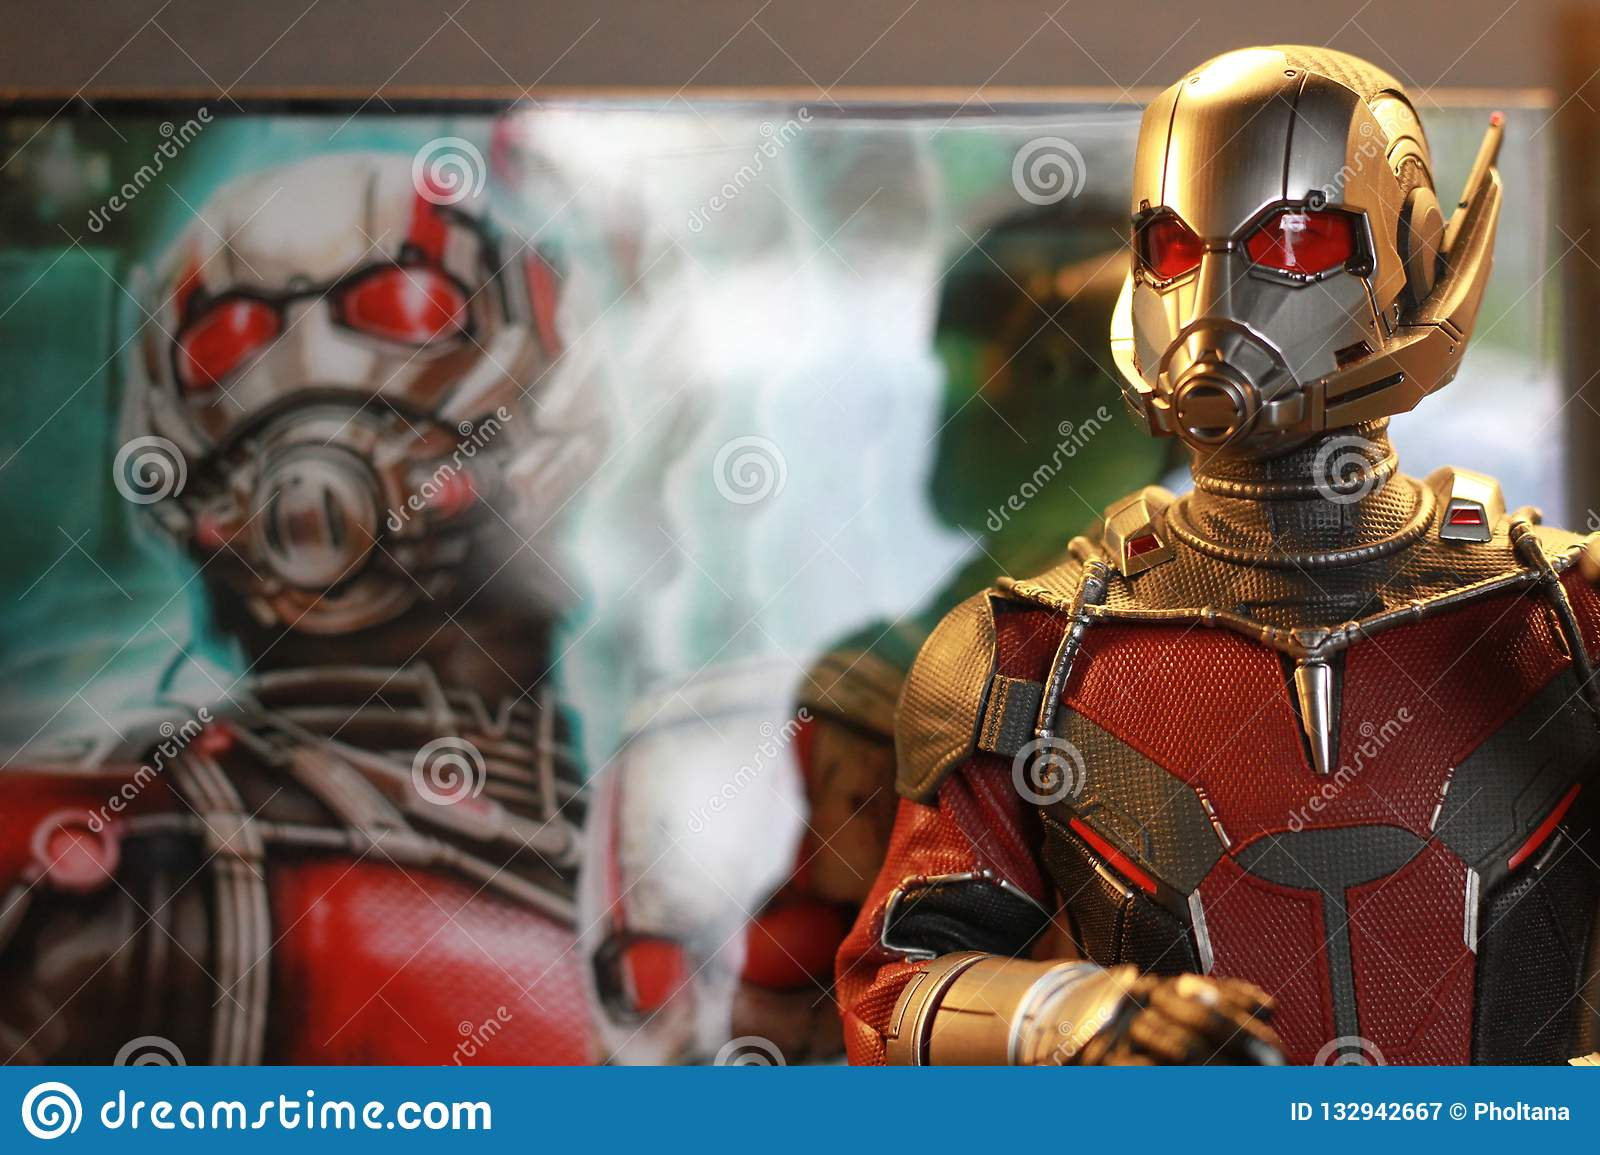 Close up shot of Antman Civil War superheros figure